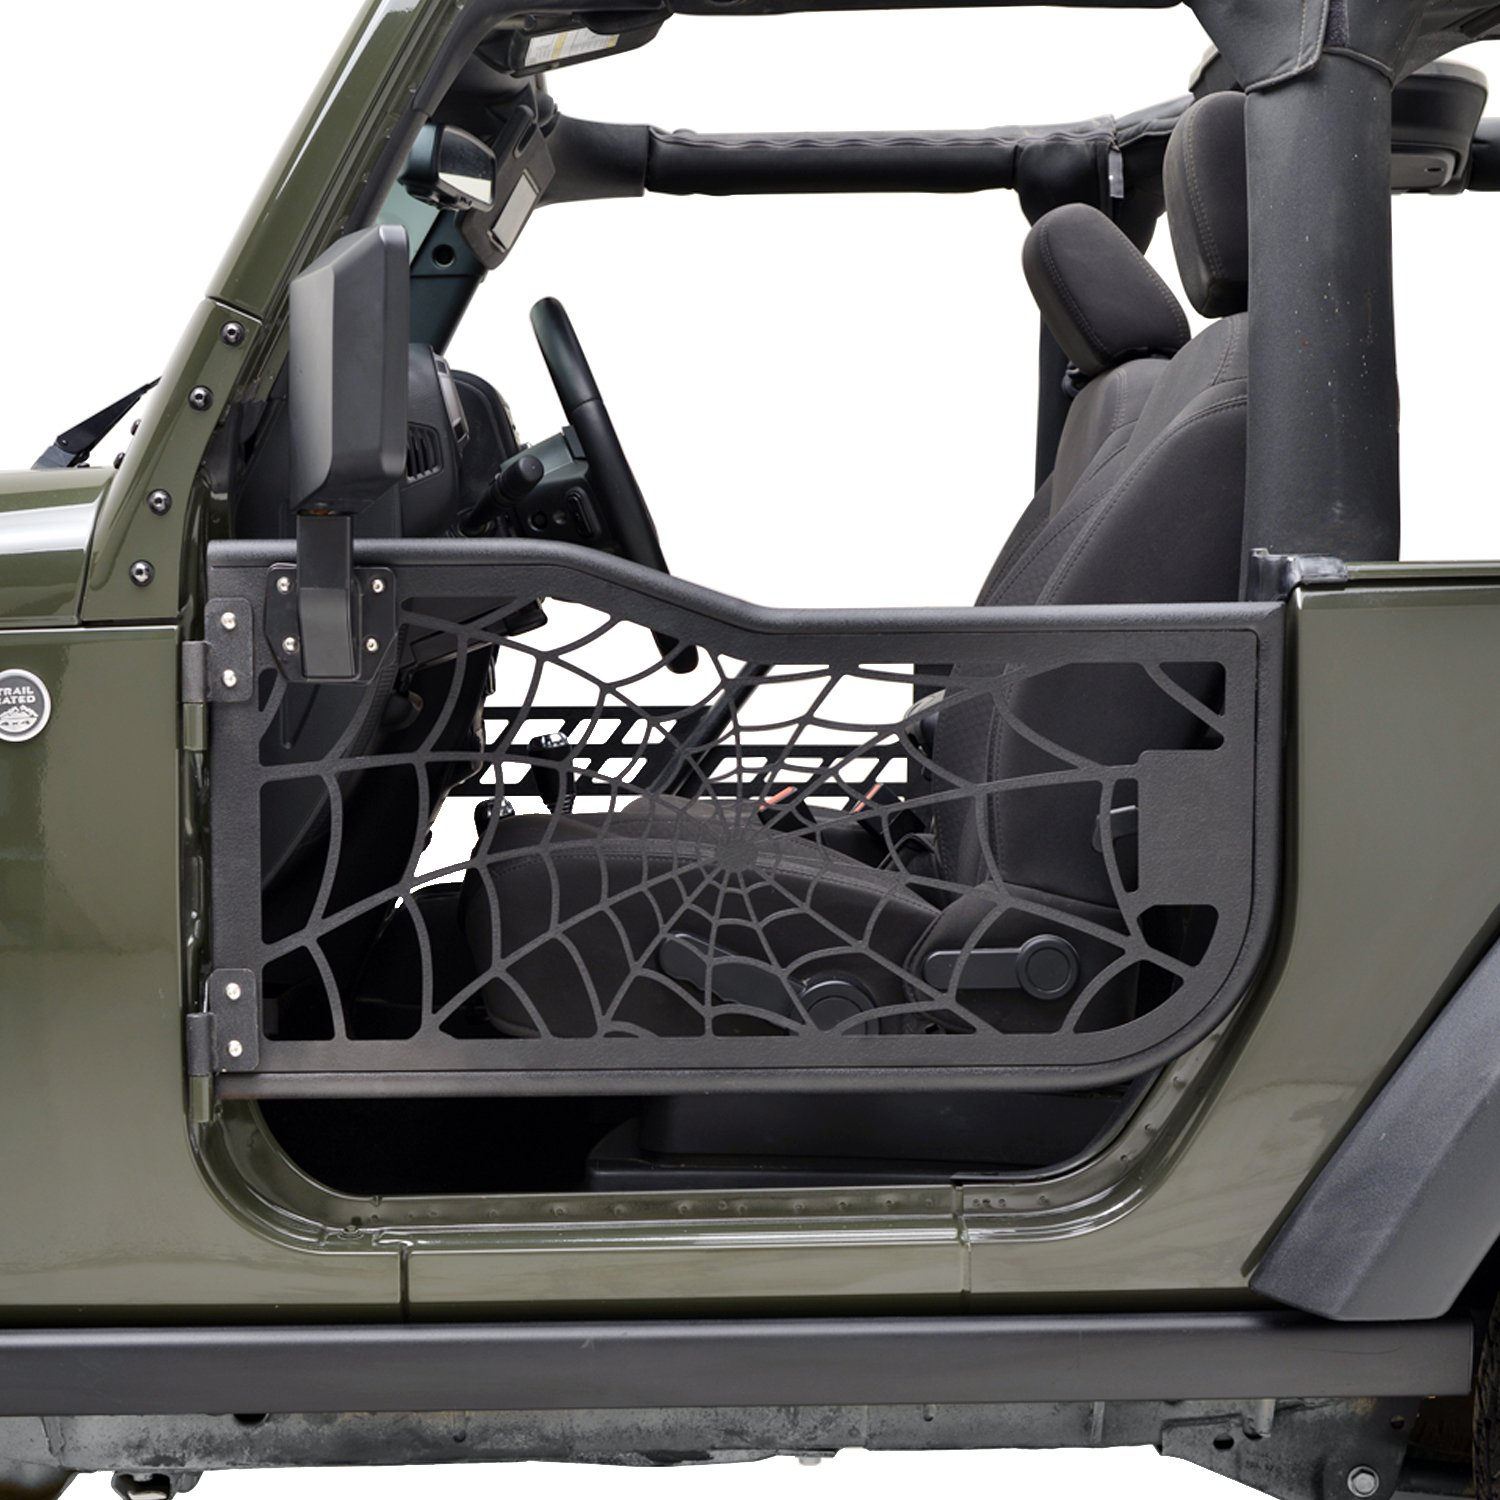 This image has been resized. Click this bar to view the full image. & Tube doors for Jk on TJ??? - Jeep Wrangler Forum